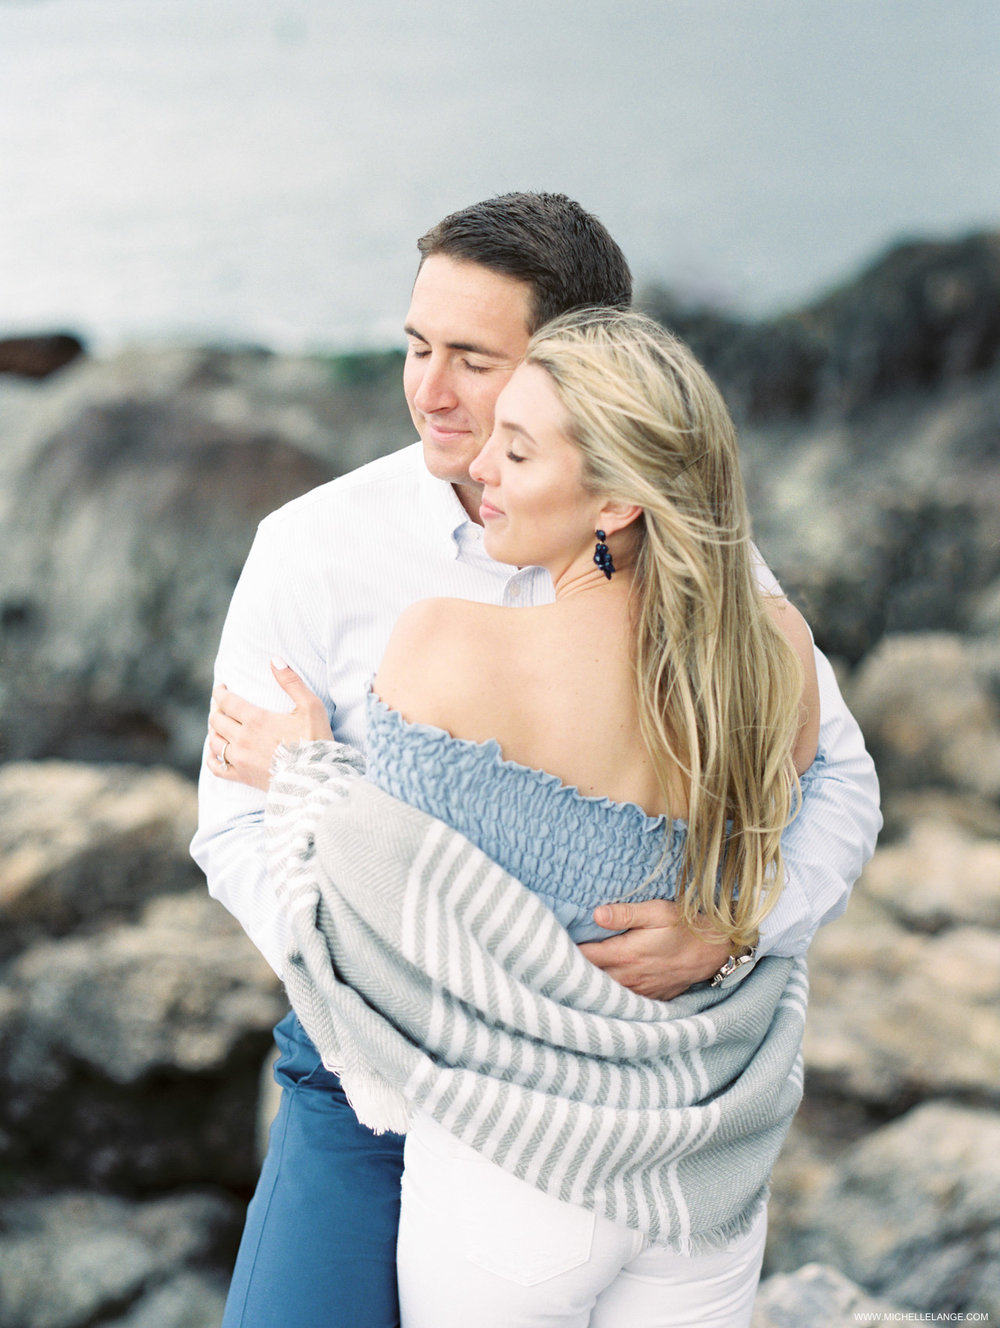 Marblehead engagement photos